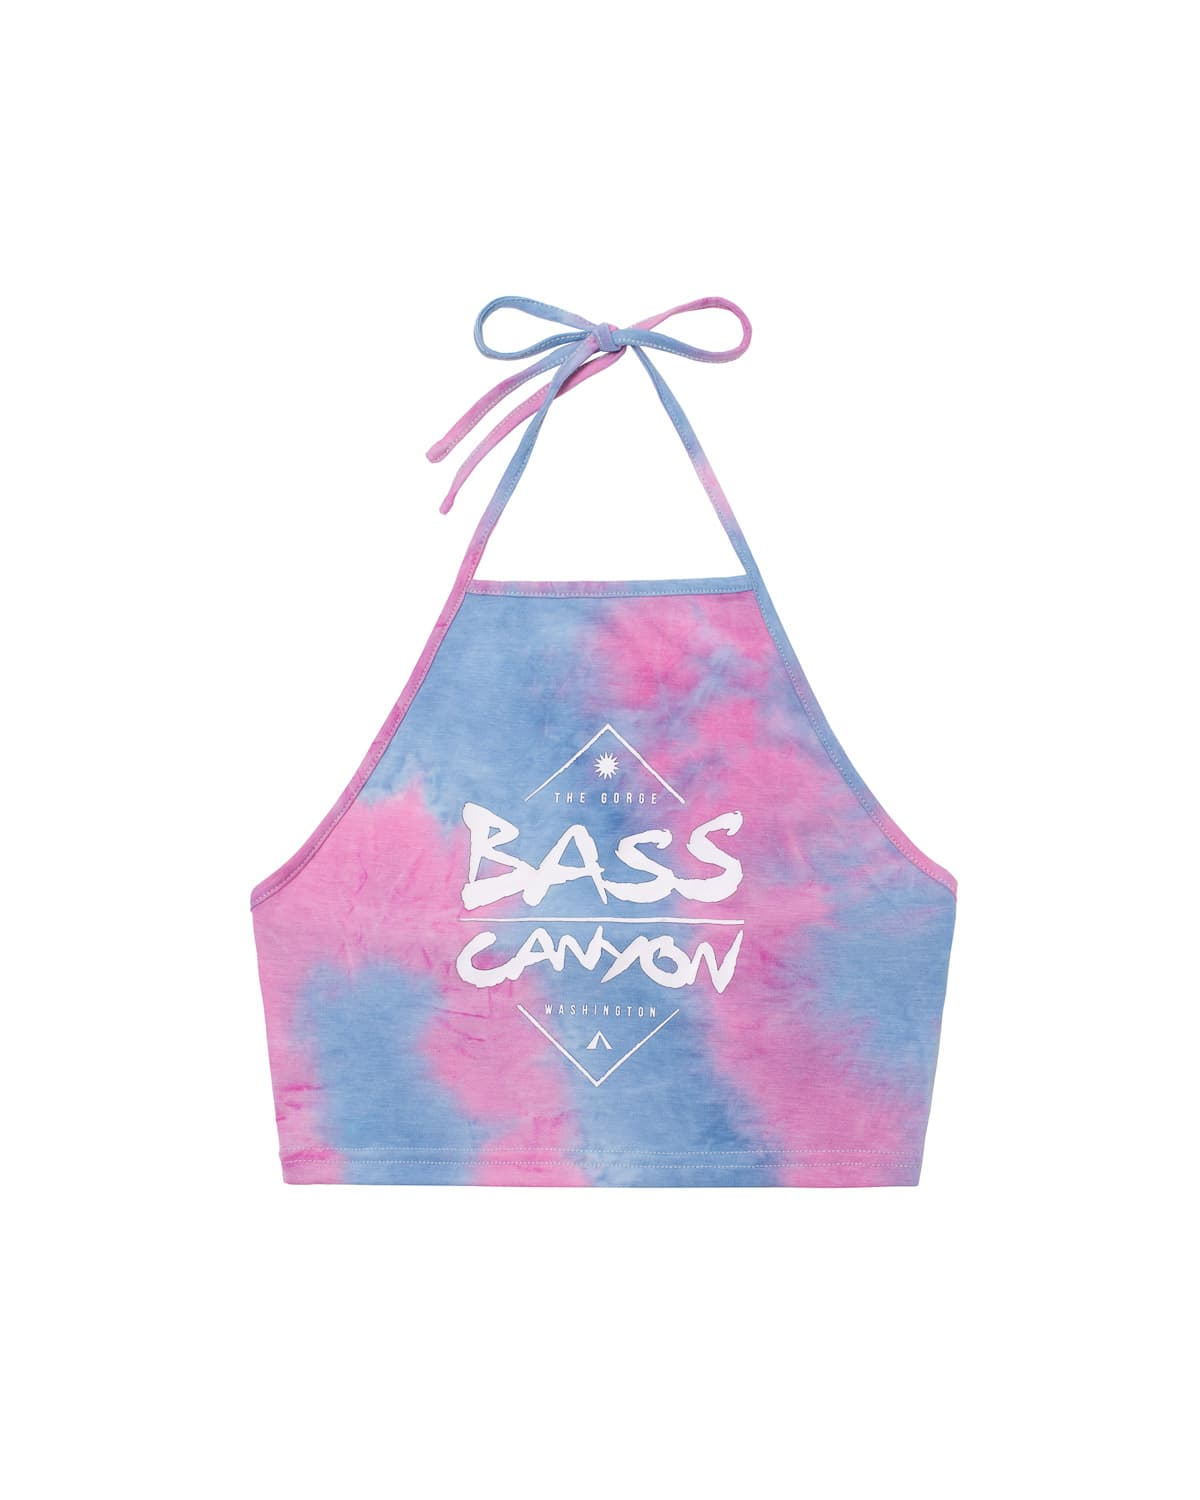 Bass Canyon Tie Dye Halter Top - Pink/Blue